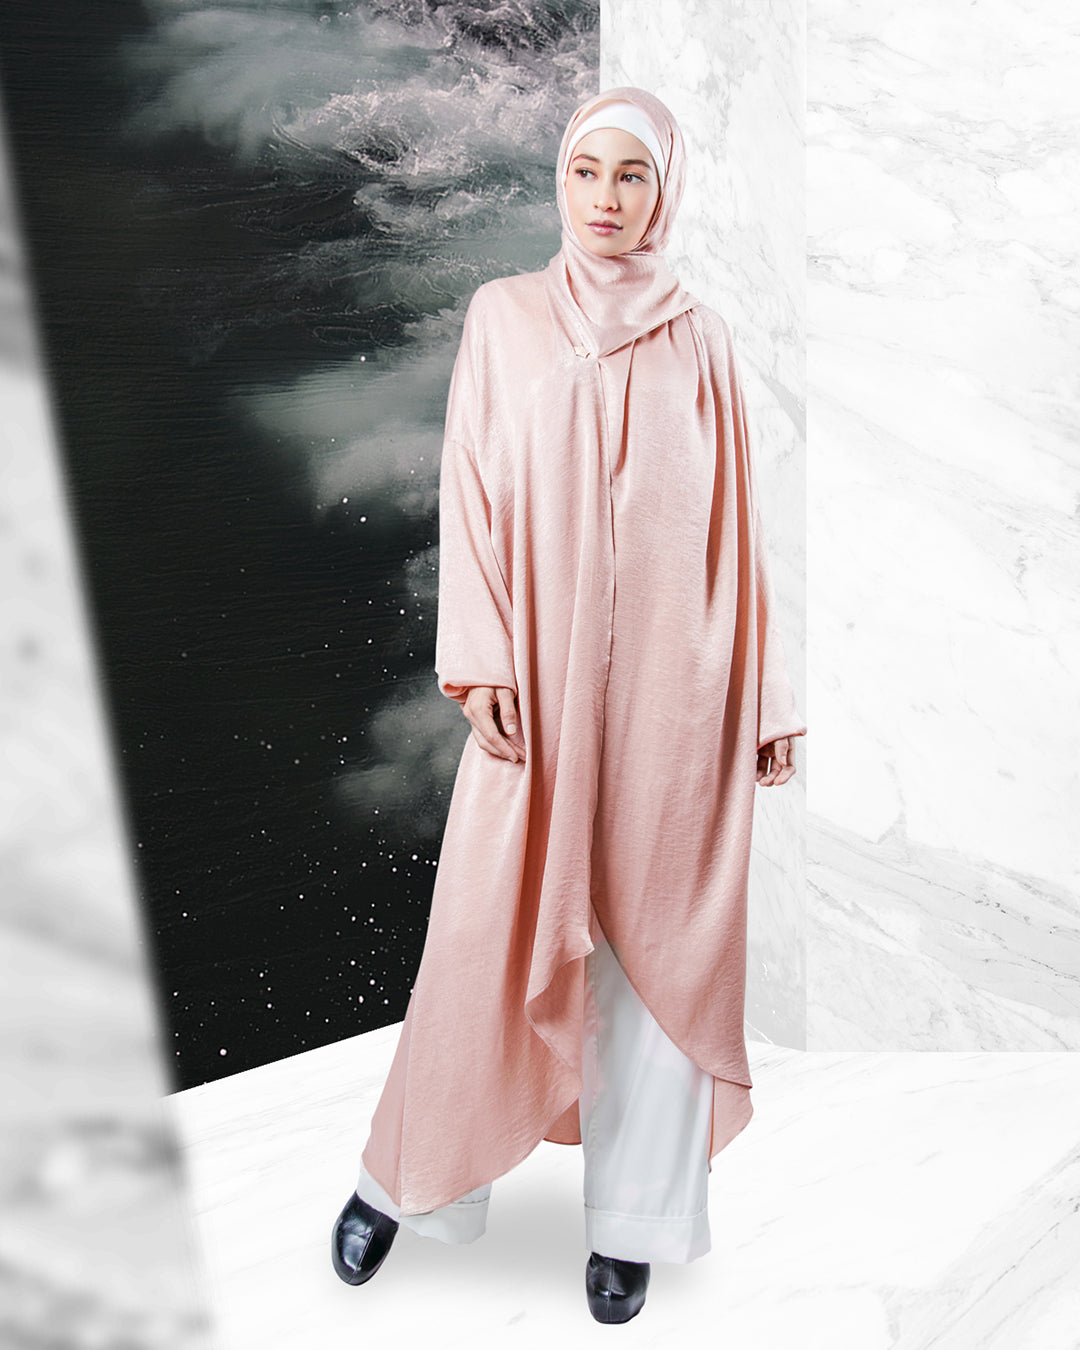 ARJANA Orchid Abaya (Mosque-Friendly)